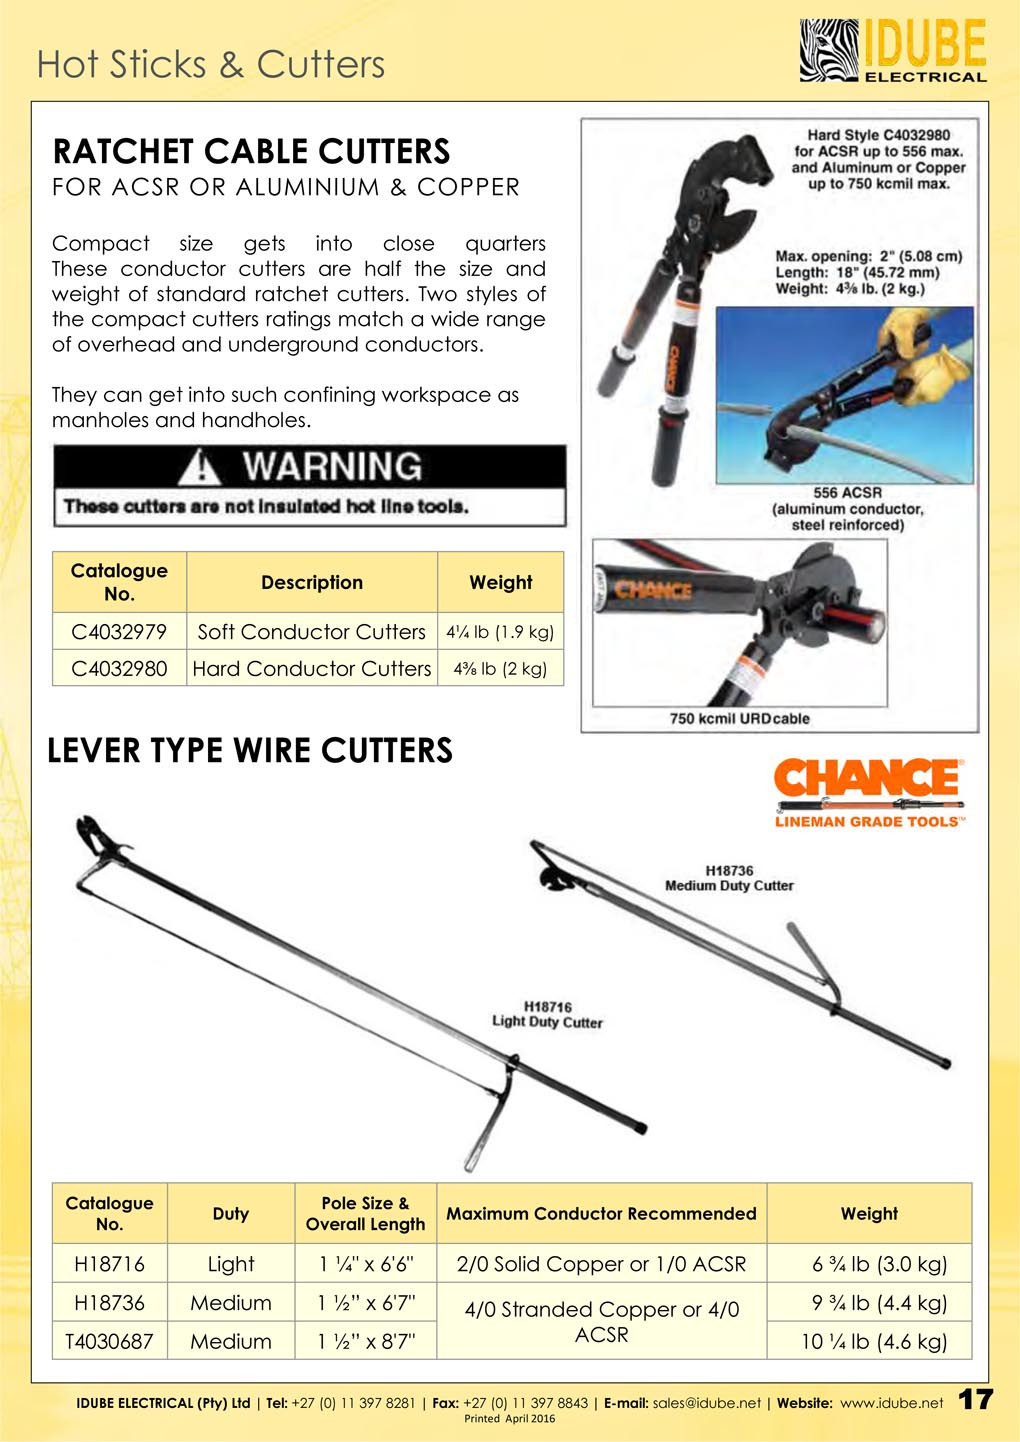 CHANCE Cable & Wire Cutters - 1020 x 1442